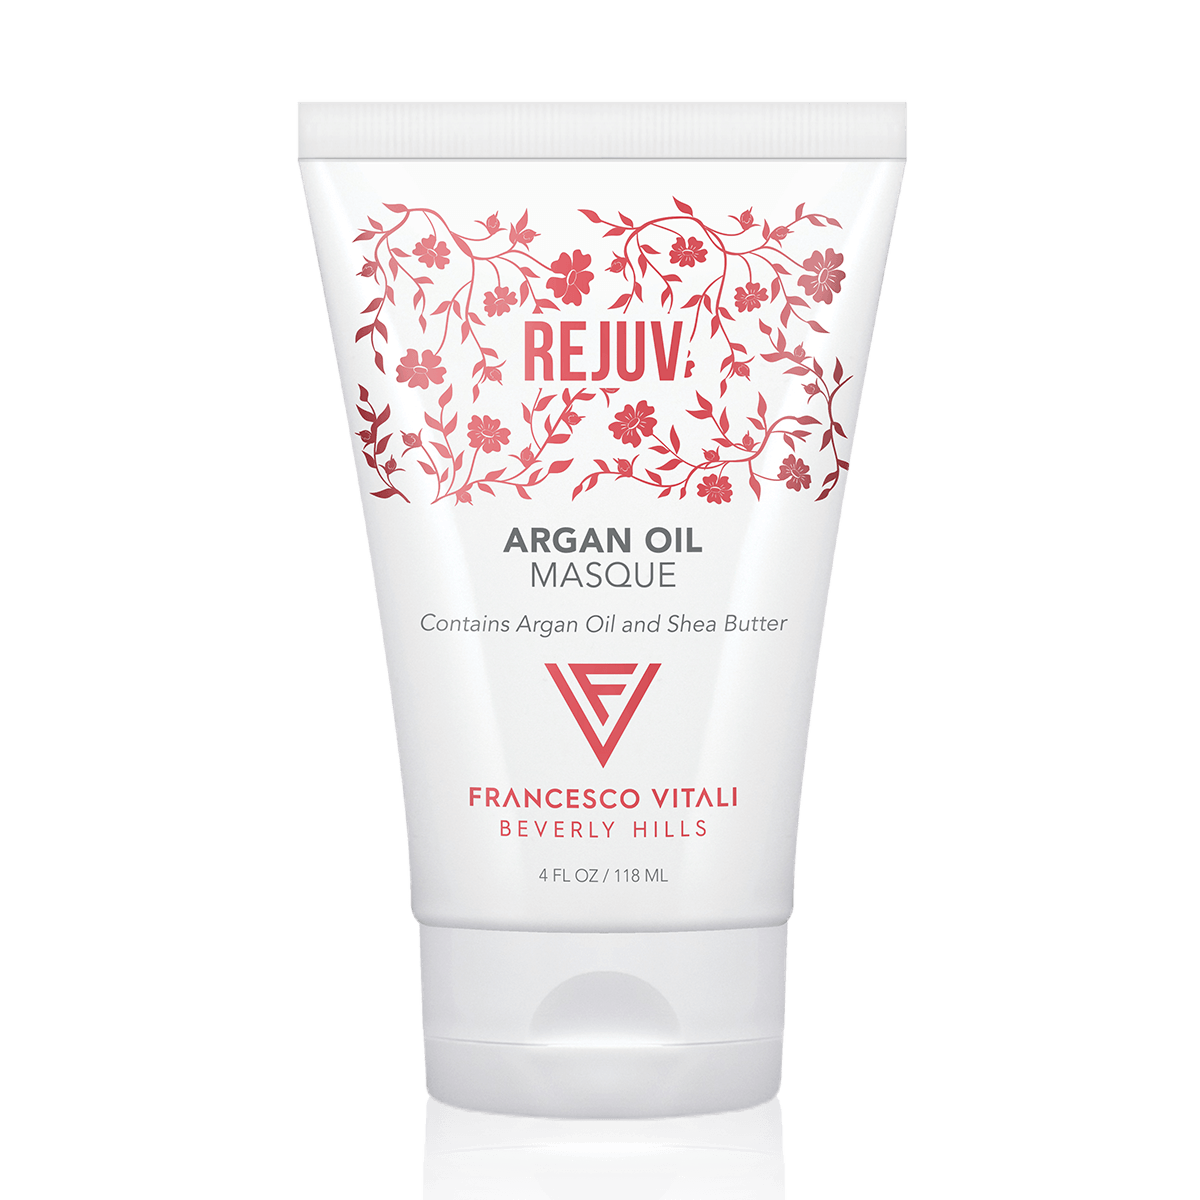 Rejuv Argan Oil Masque